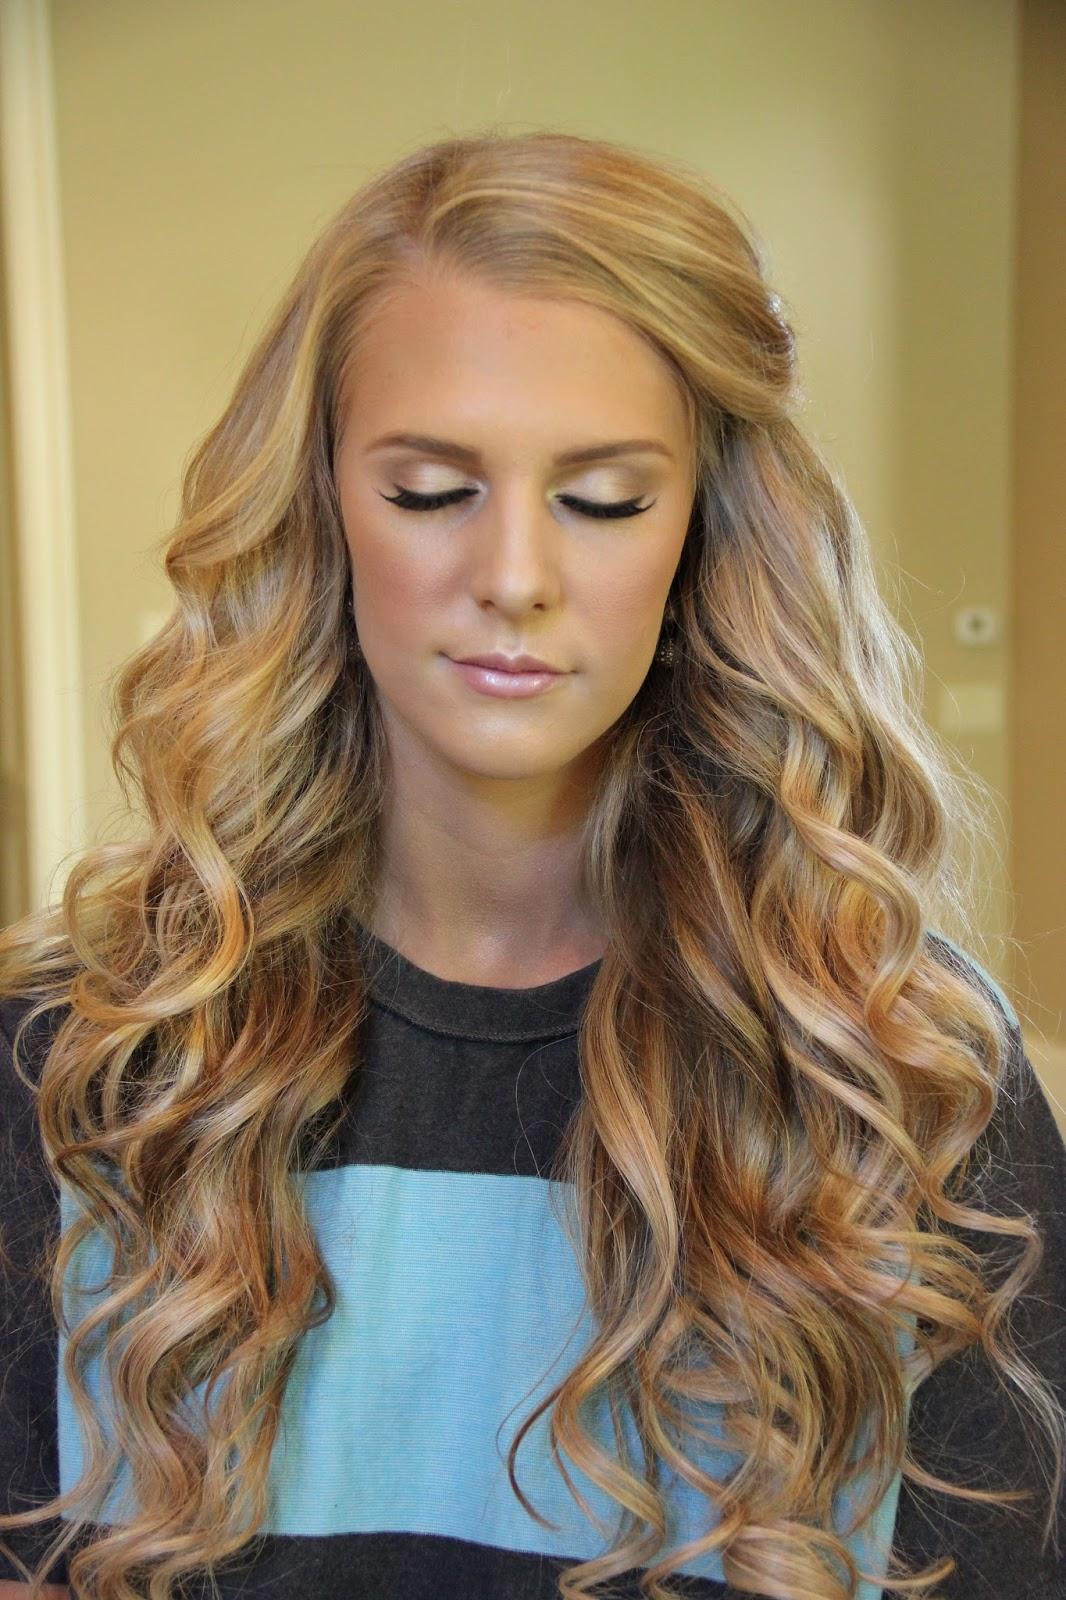 I wish my hair could look like hers :( | hair | Pinterest ...